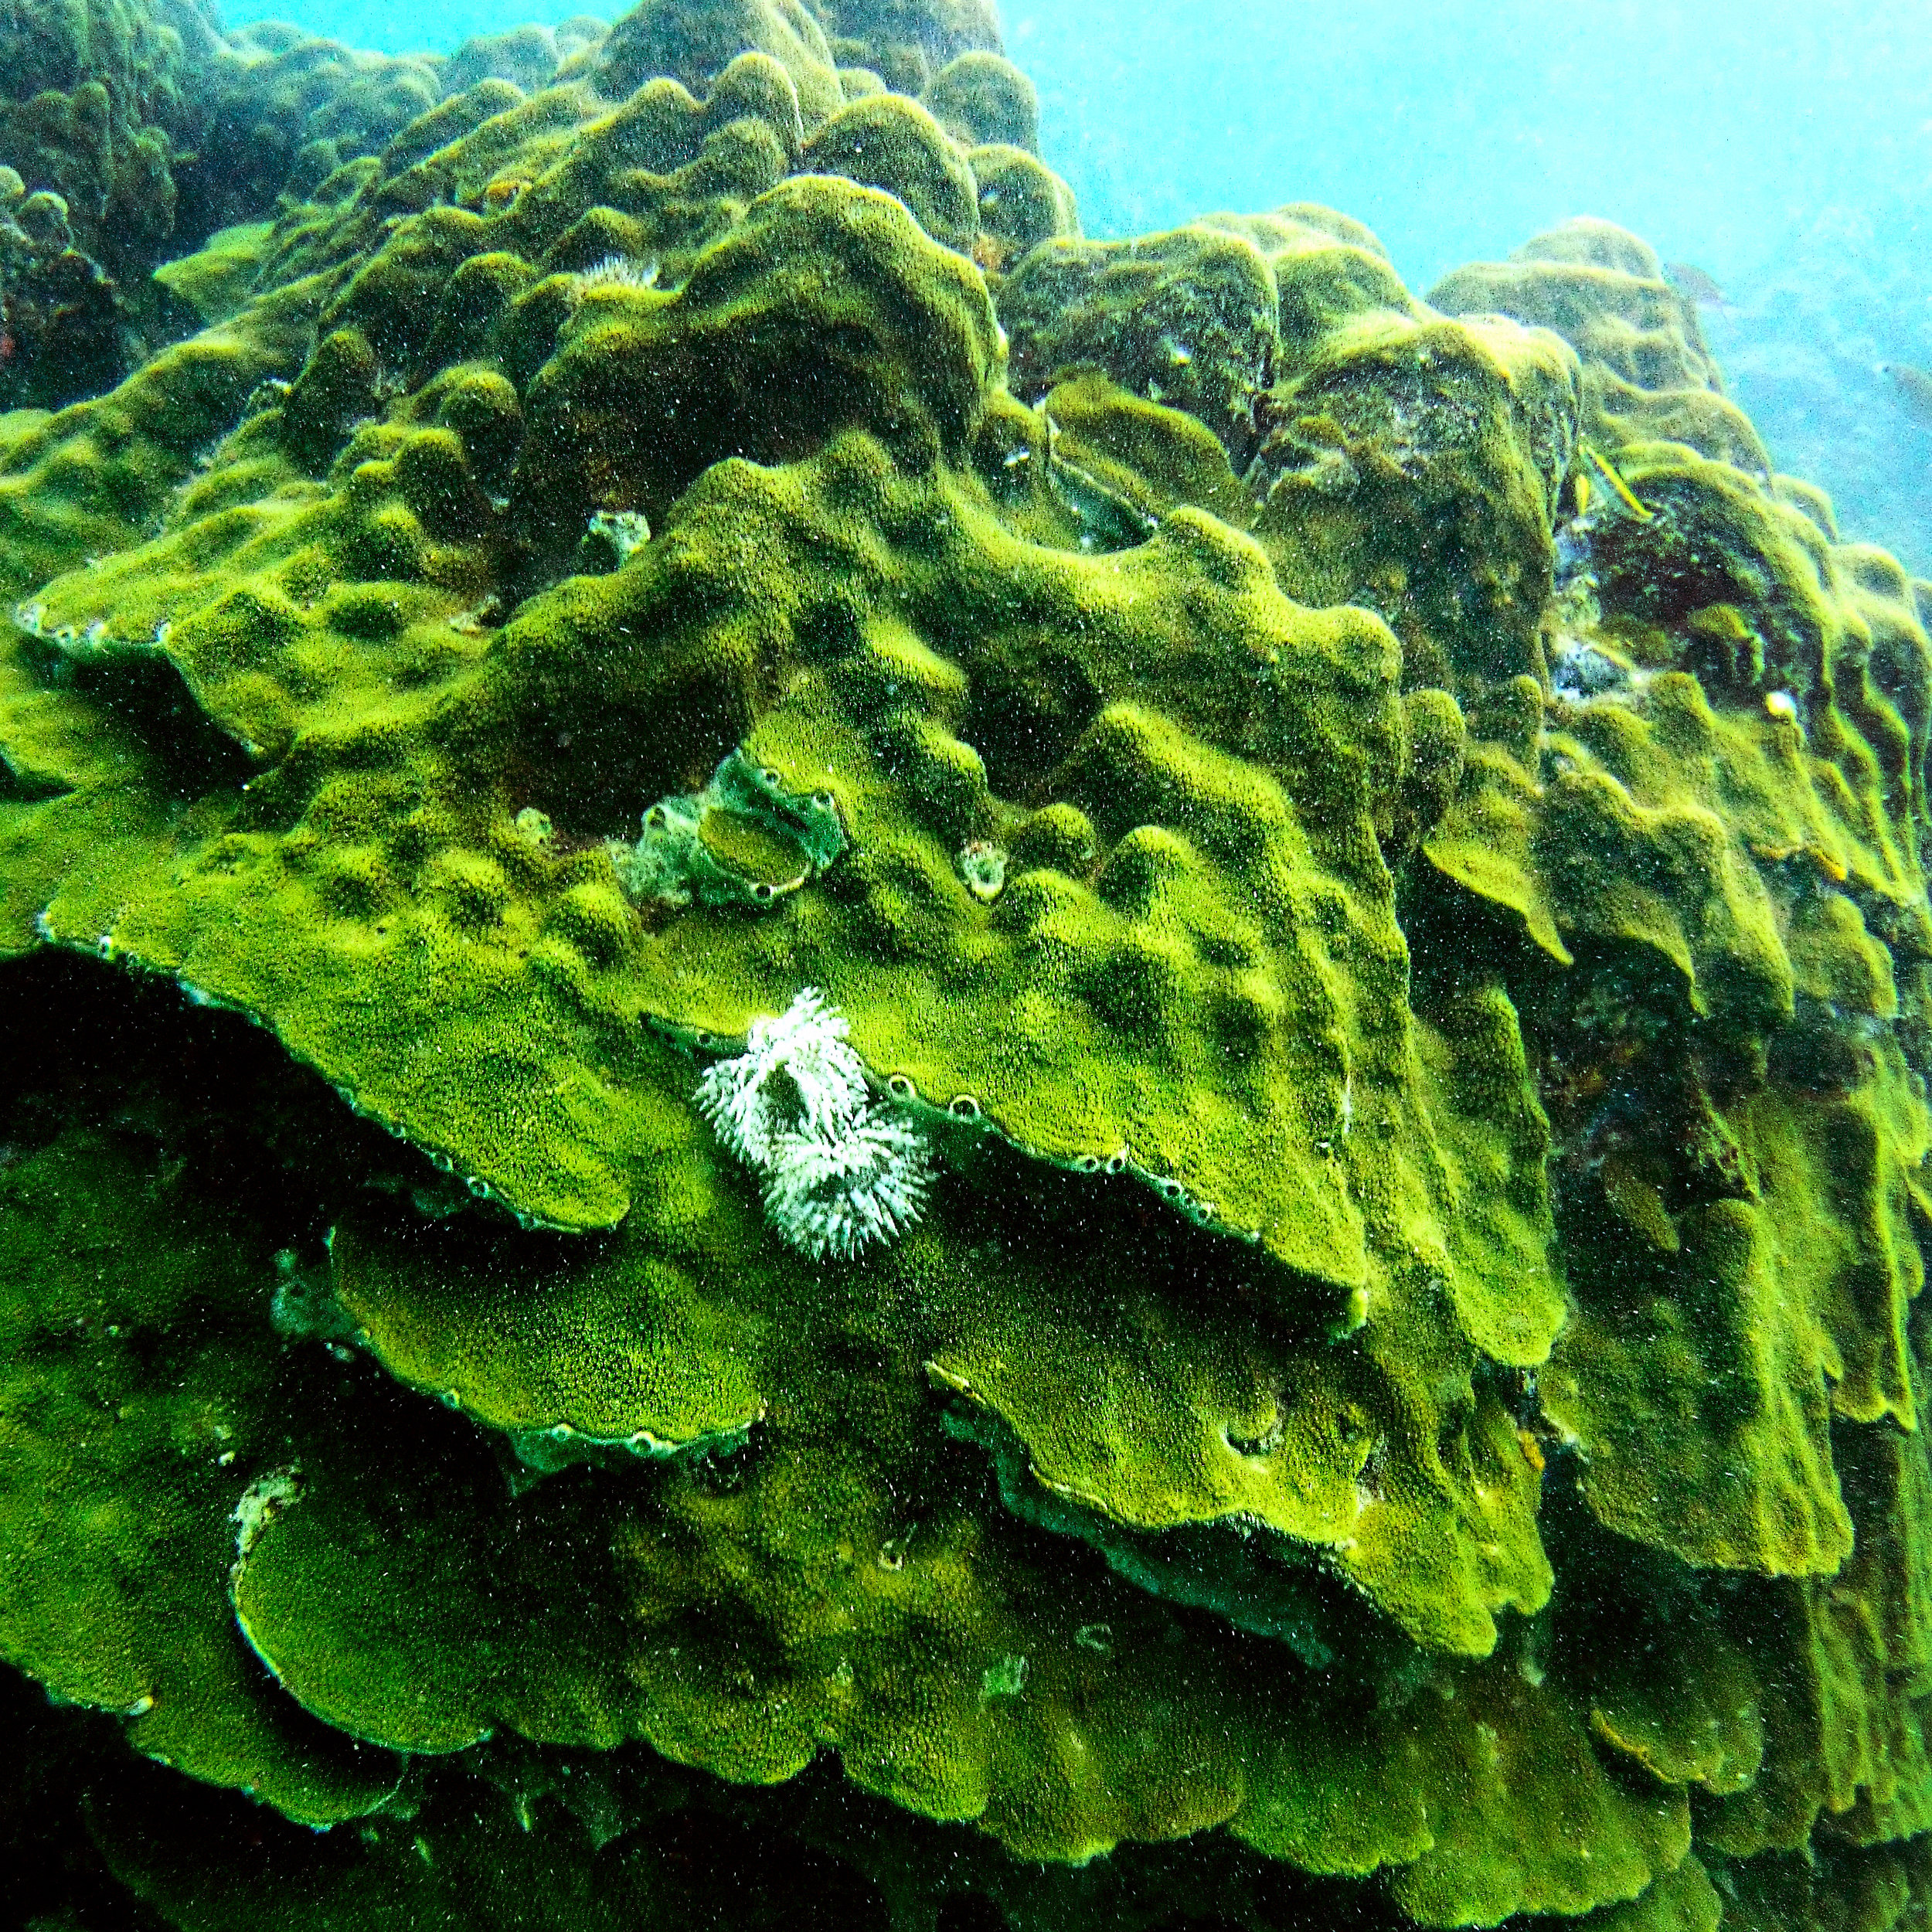 A massive, healthy colony of  Orbicella faveolata , also known as the mountainous star coral.